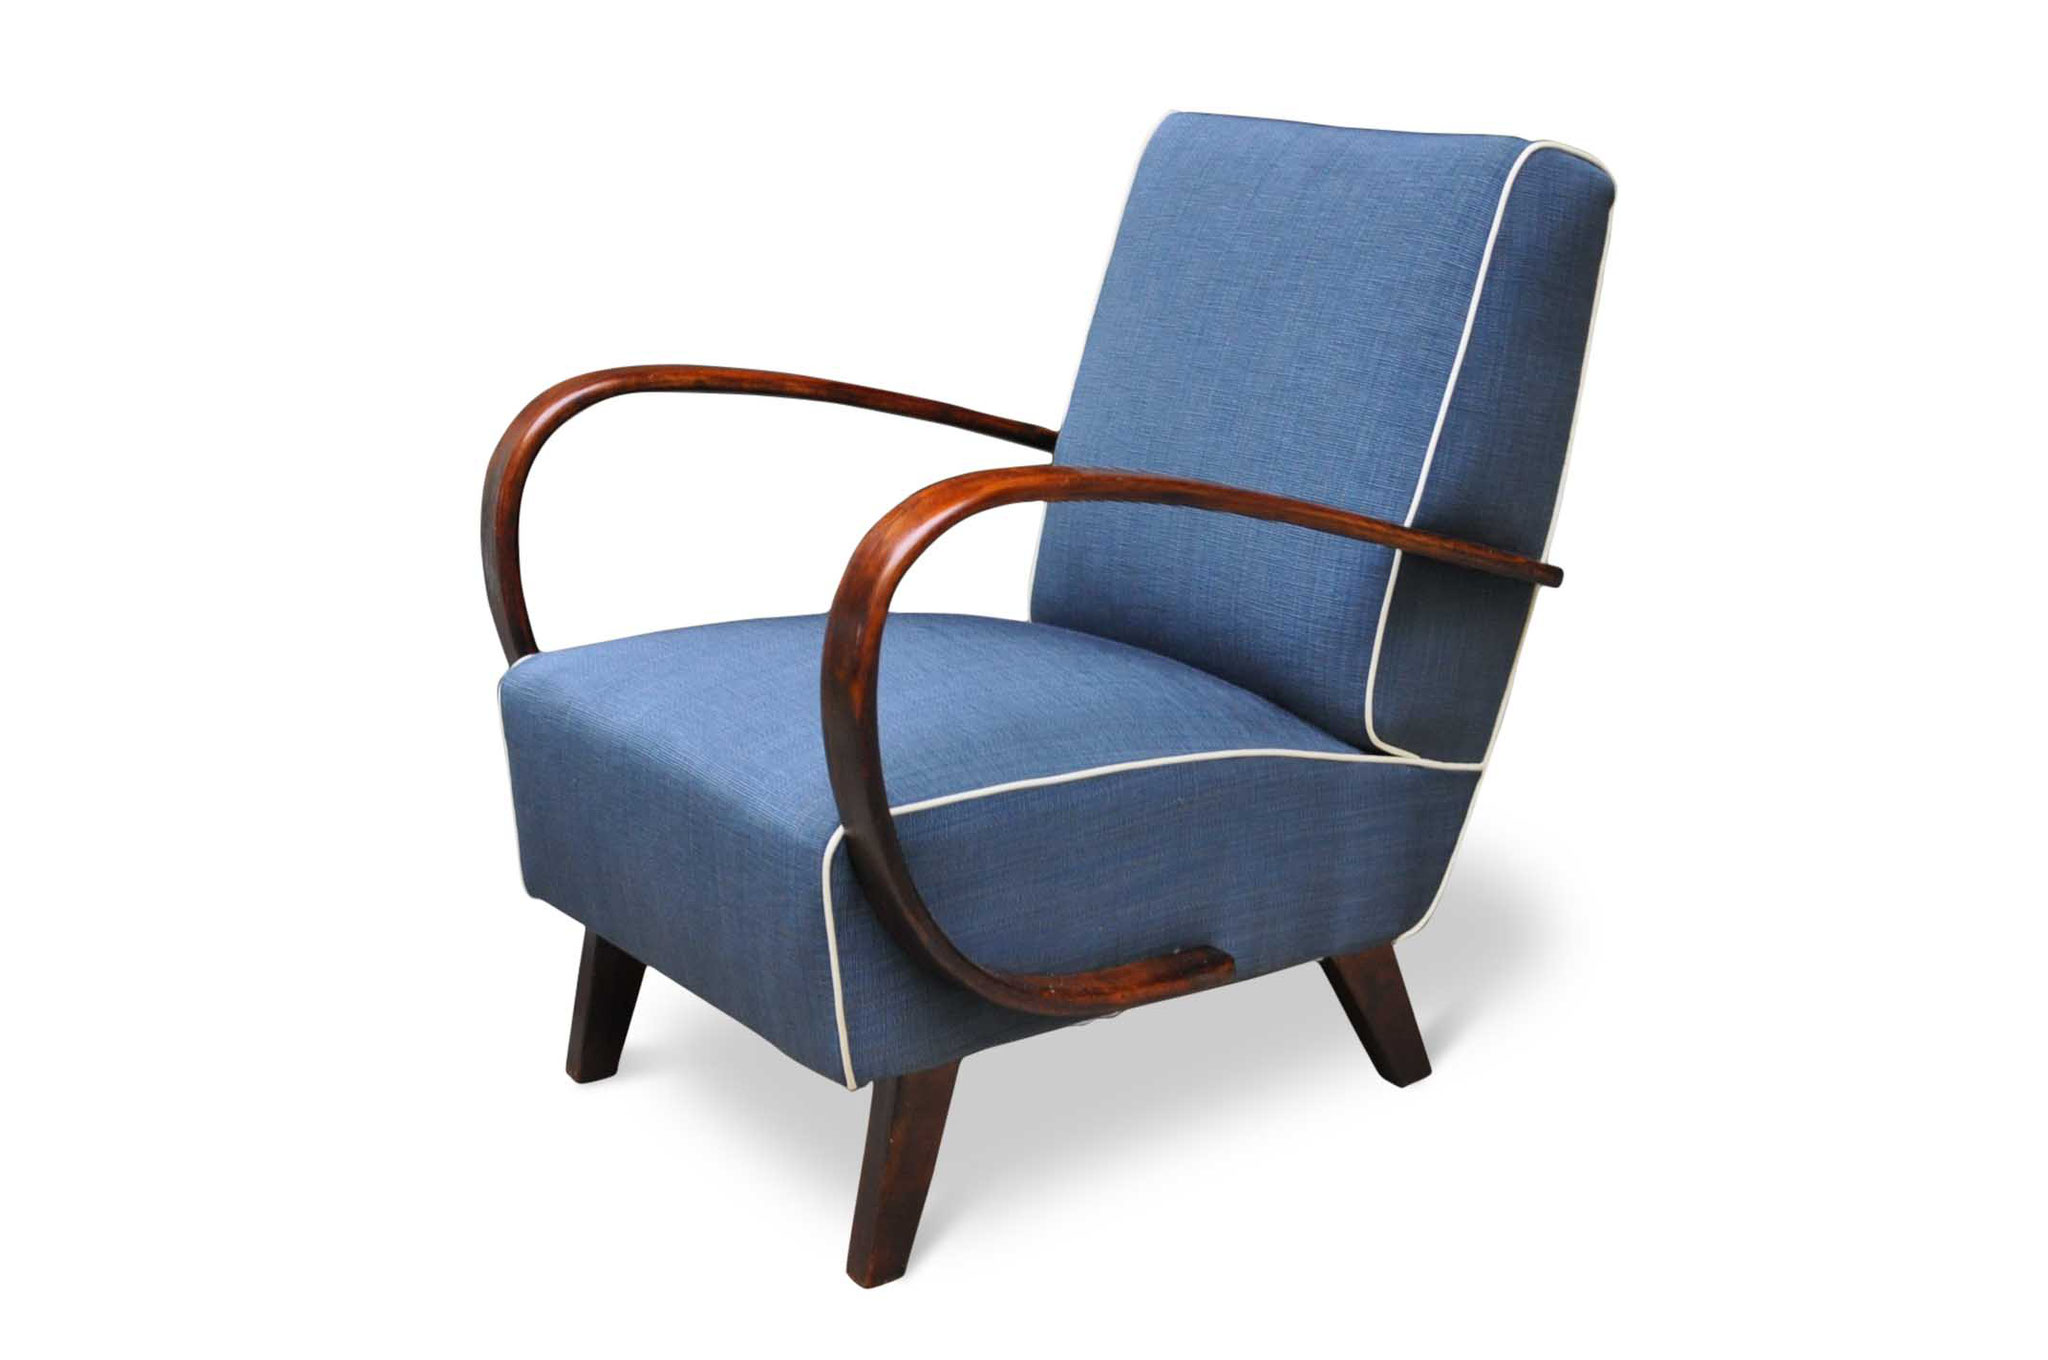 mid century chair in blue steel canettè fabric